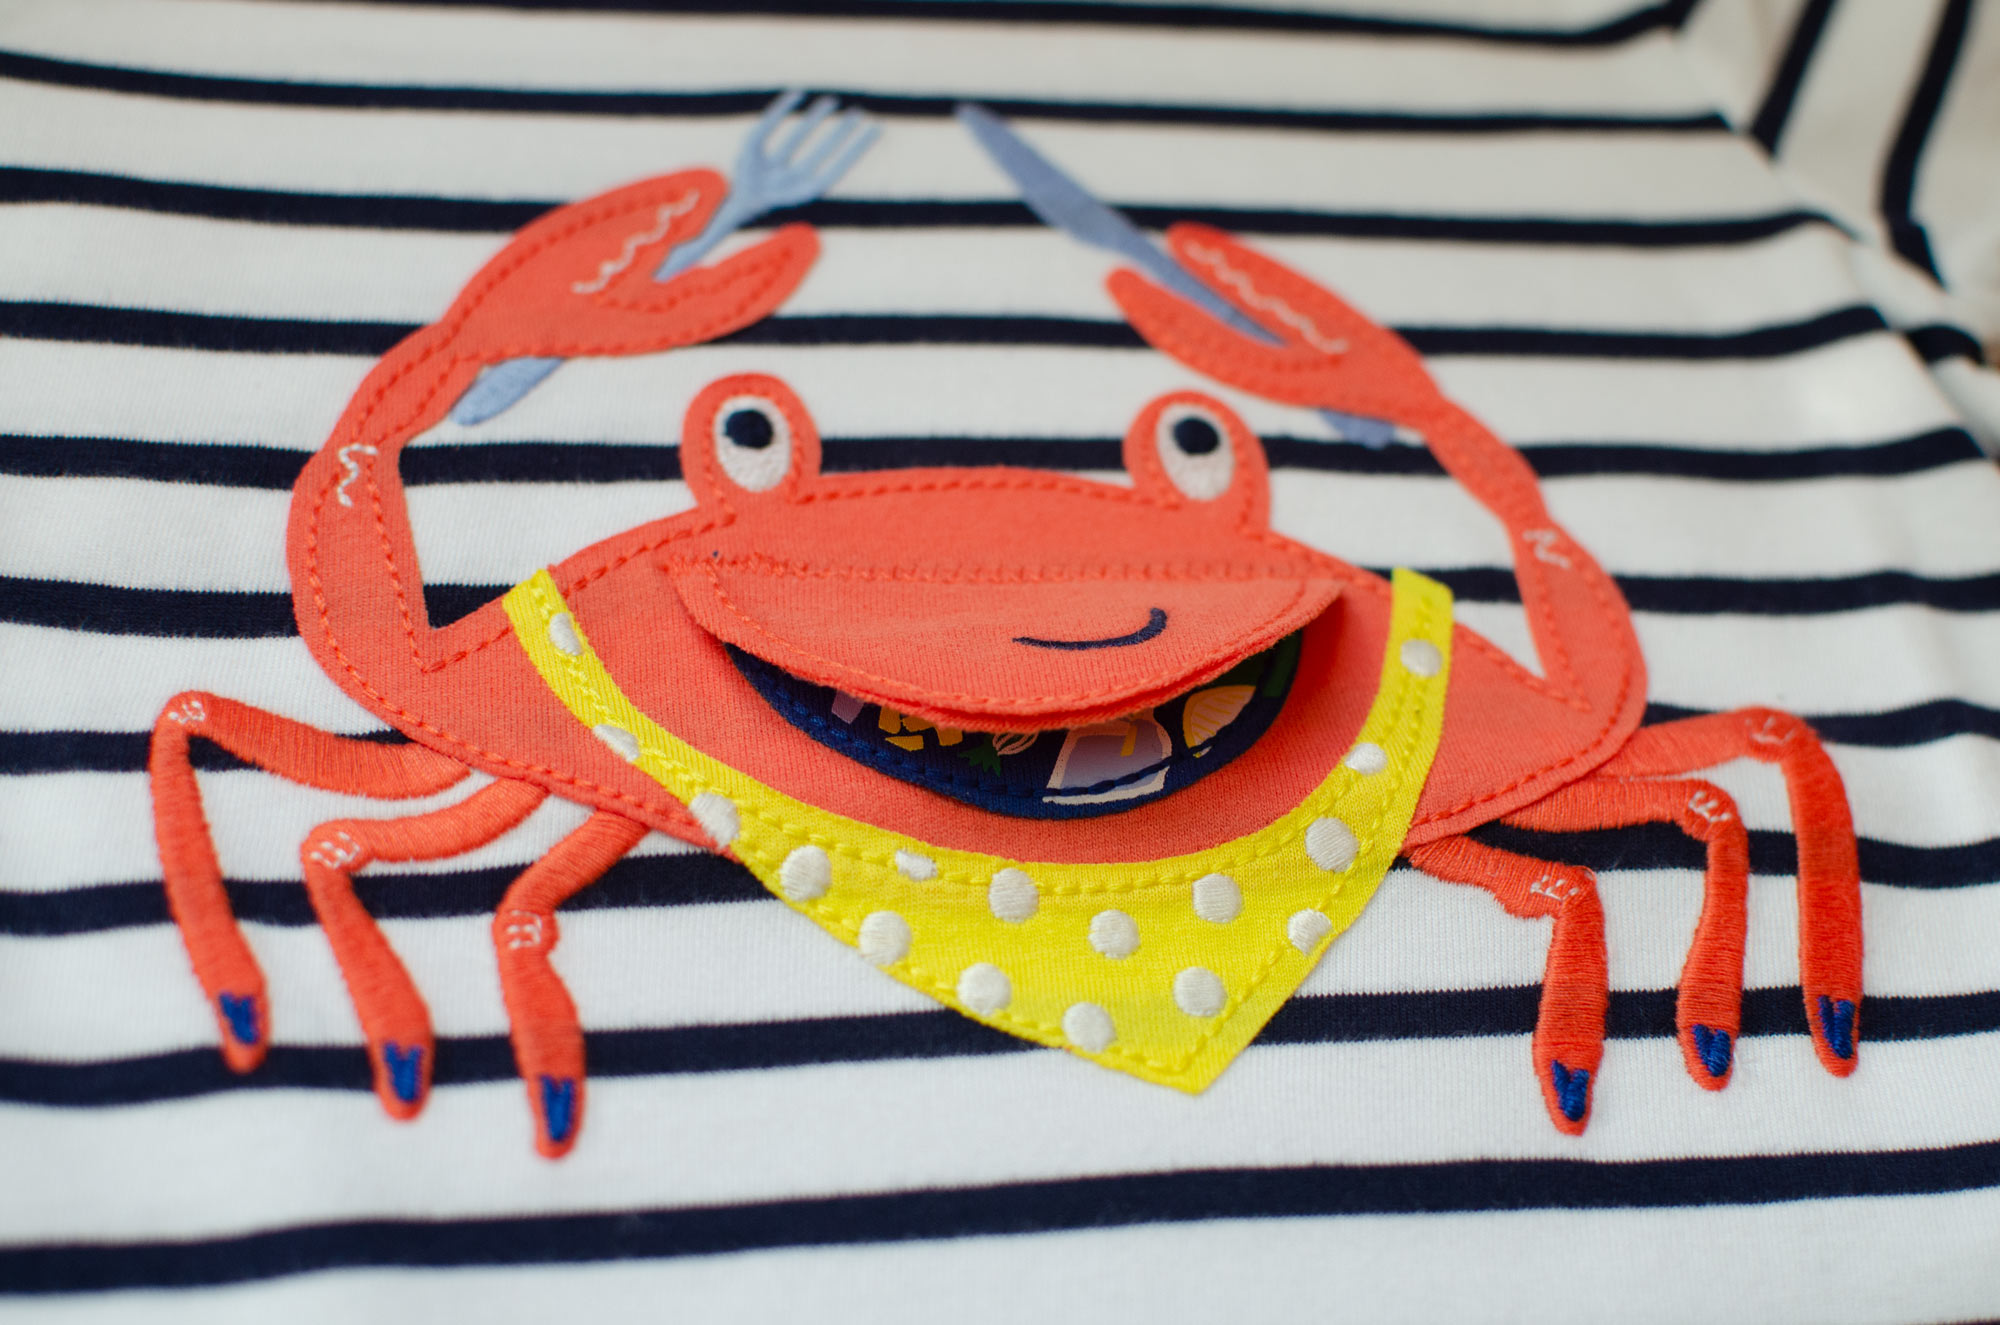 Crab chomp applique designed by Elly Jahnz for Joules Clothing